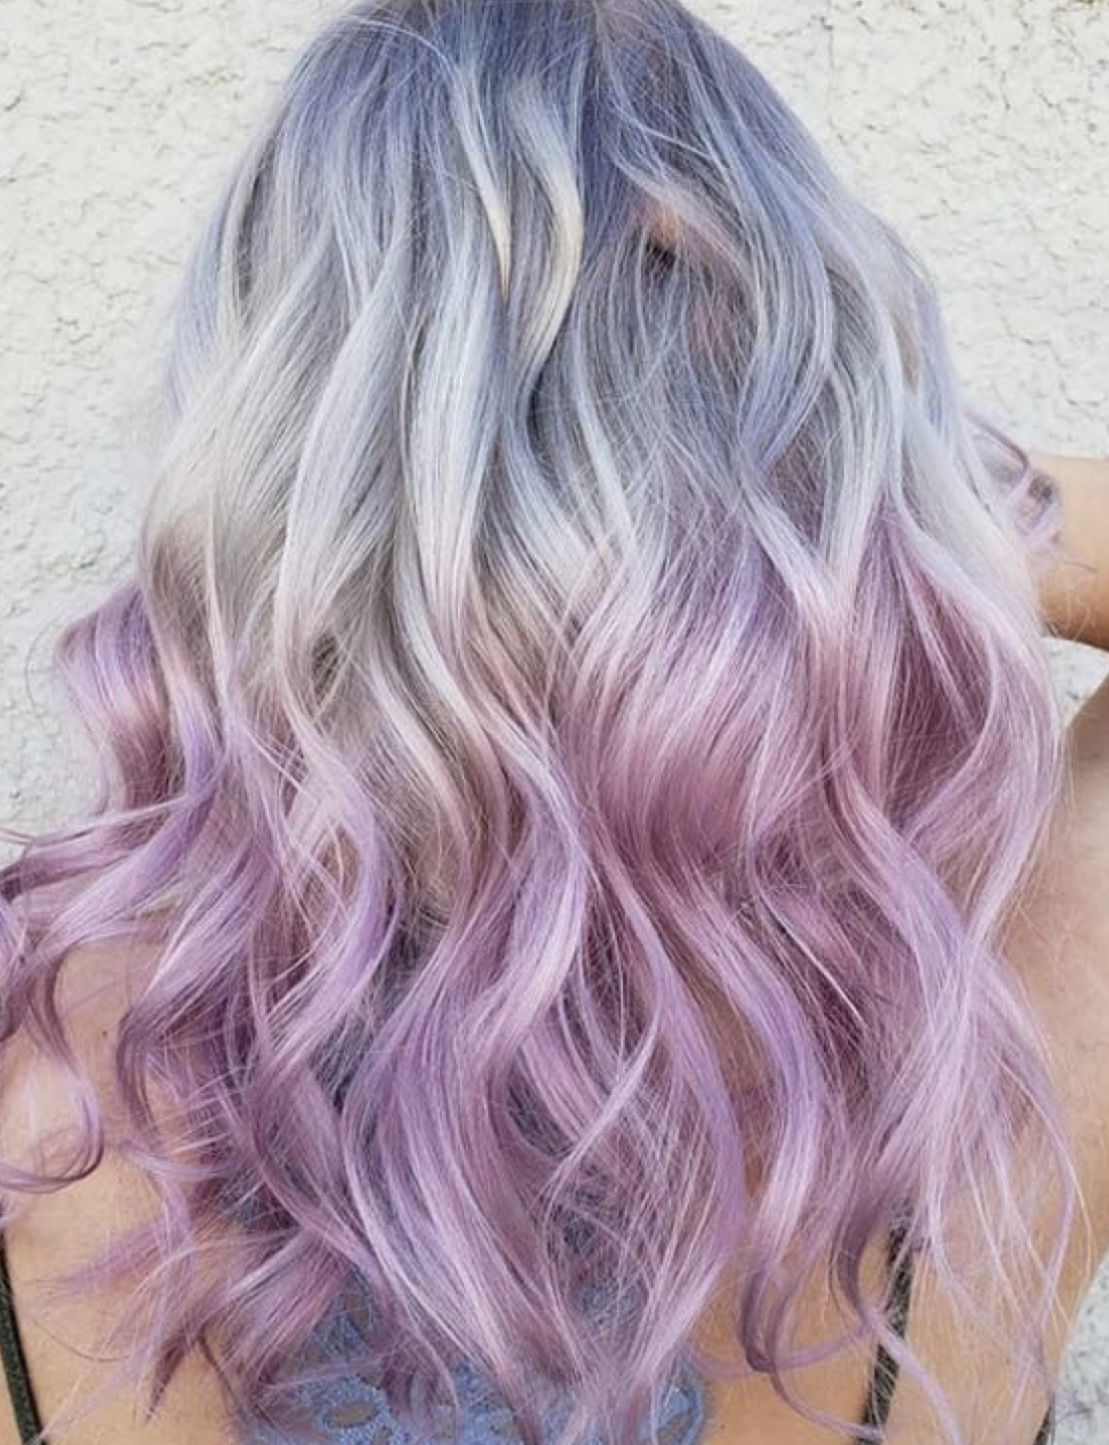 Pin by 🌵maddie🌵 on ❁ hair ❁  Hair styles, Hair color pastel